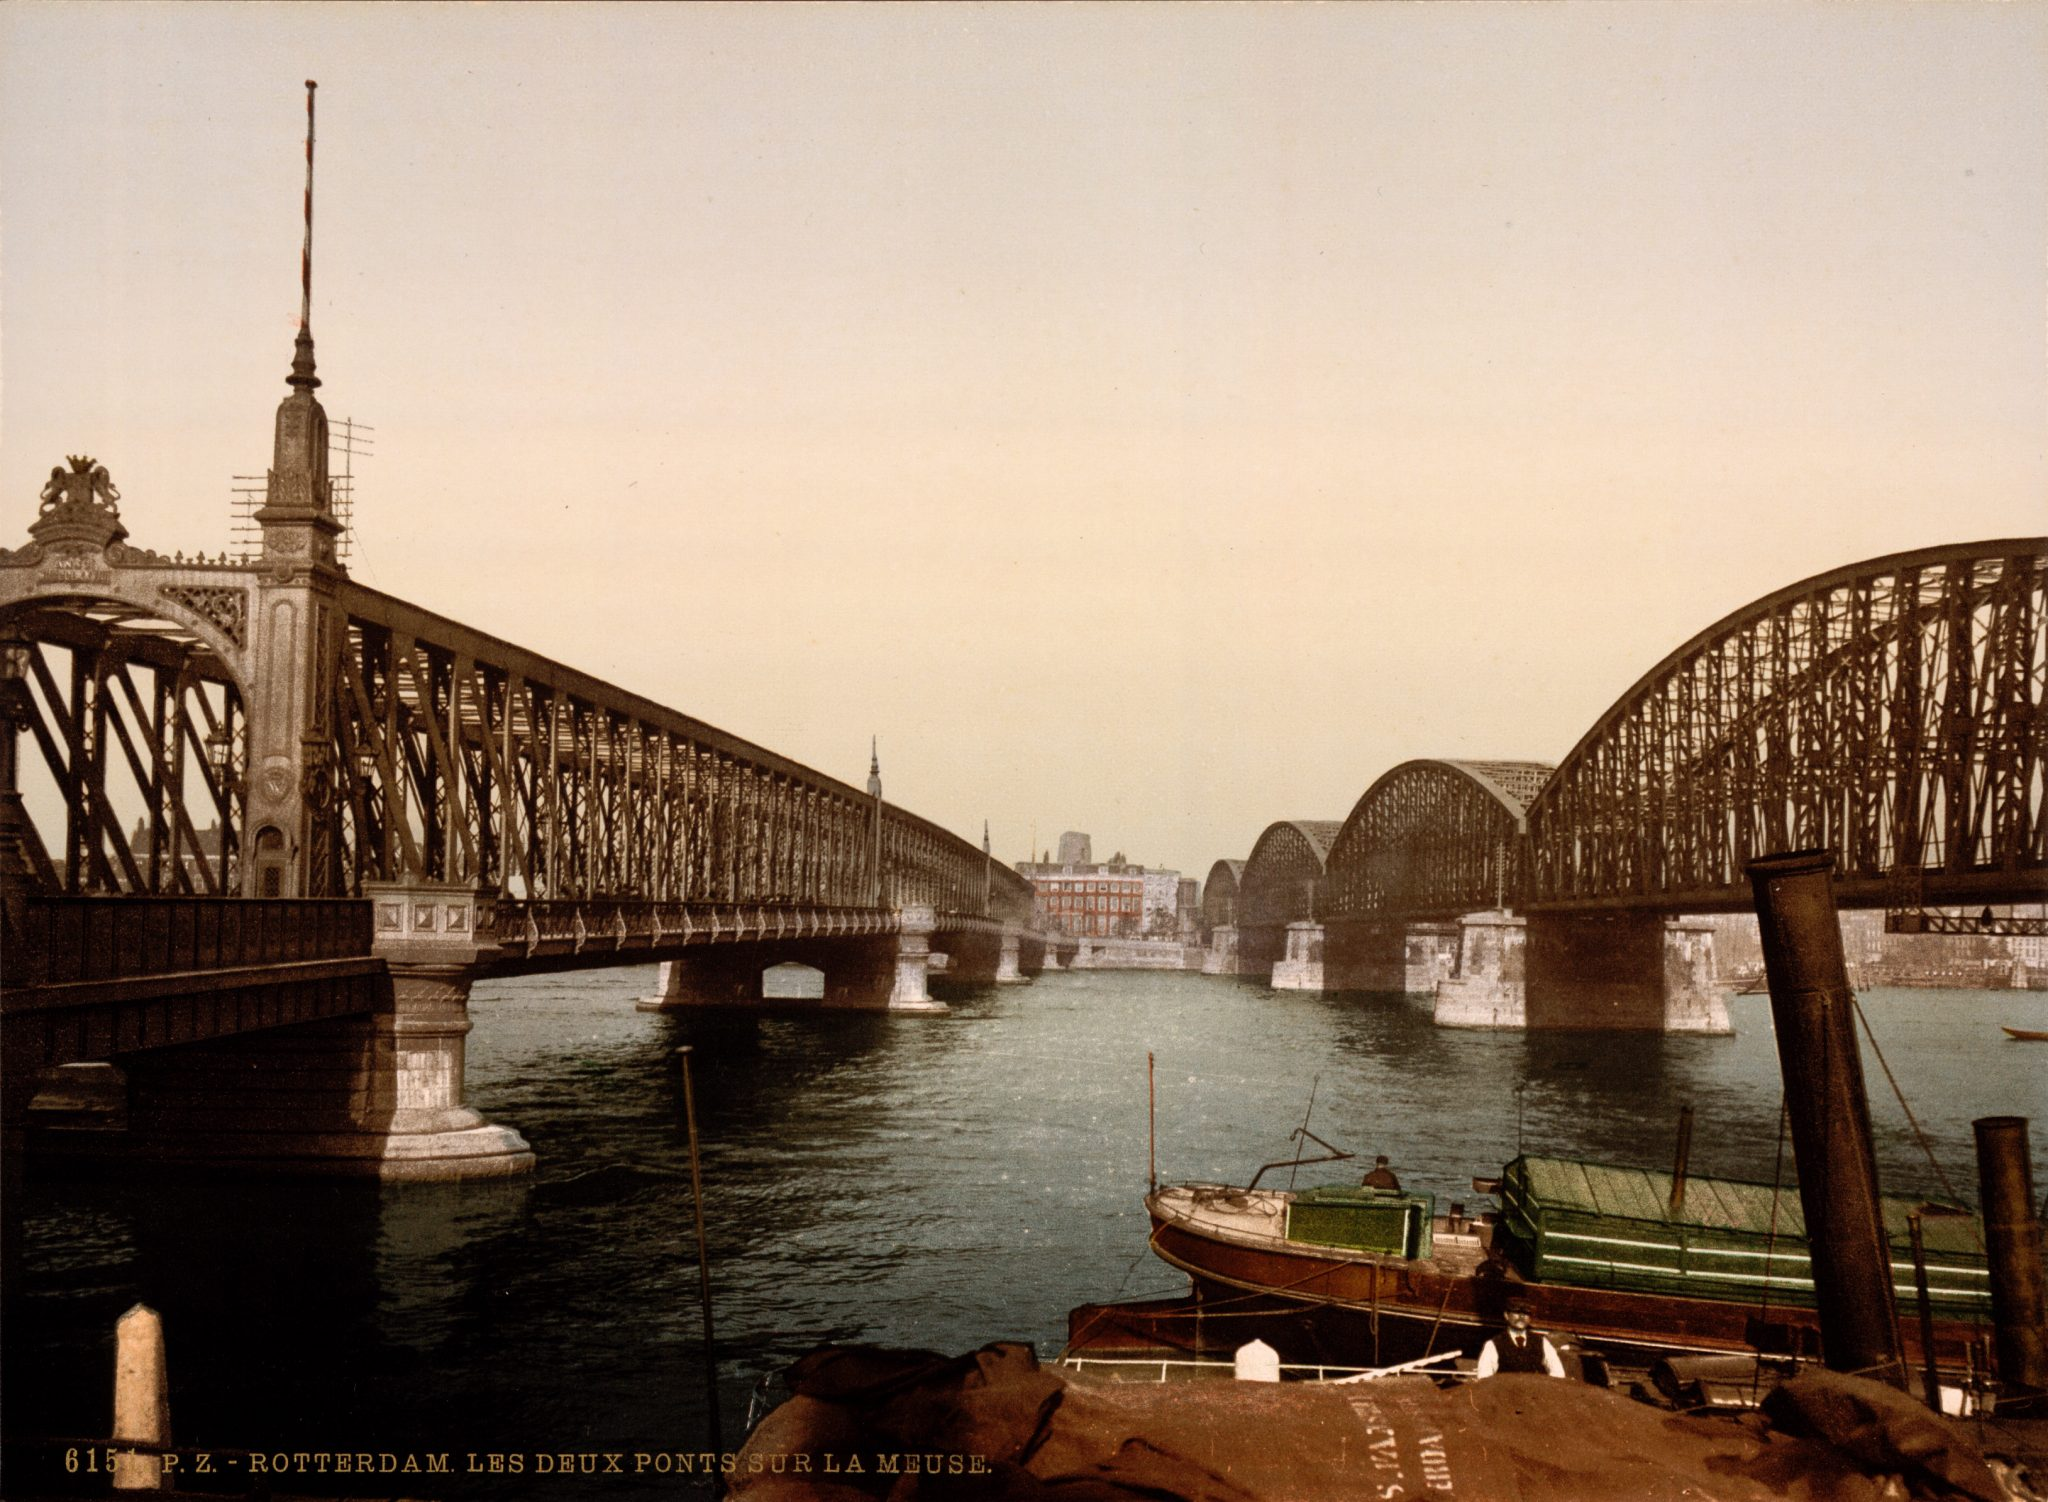 Two Bridges and a Mosque -